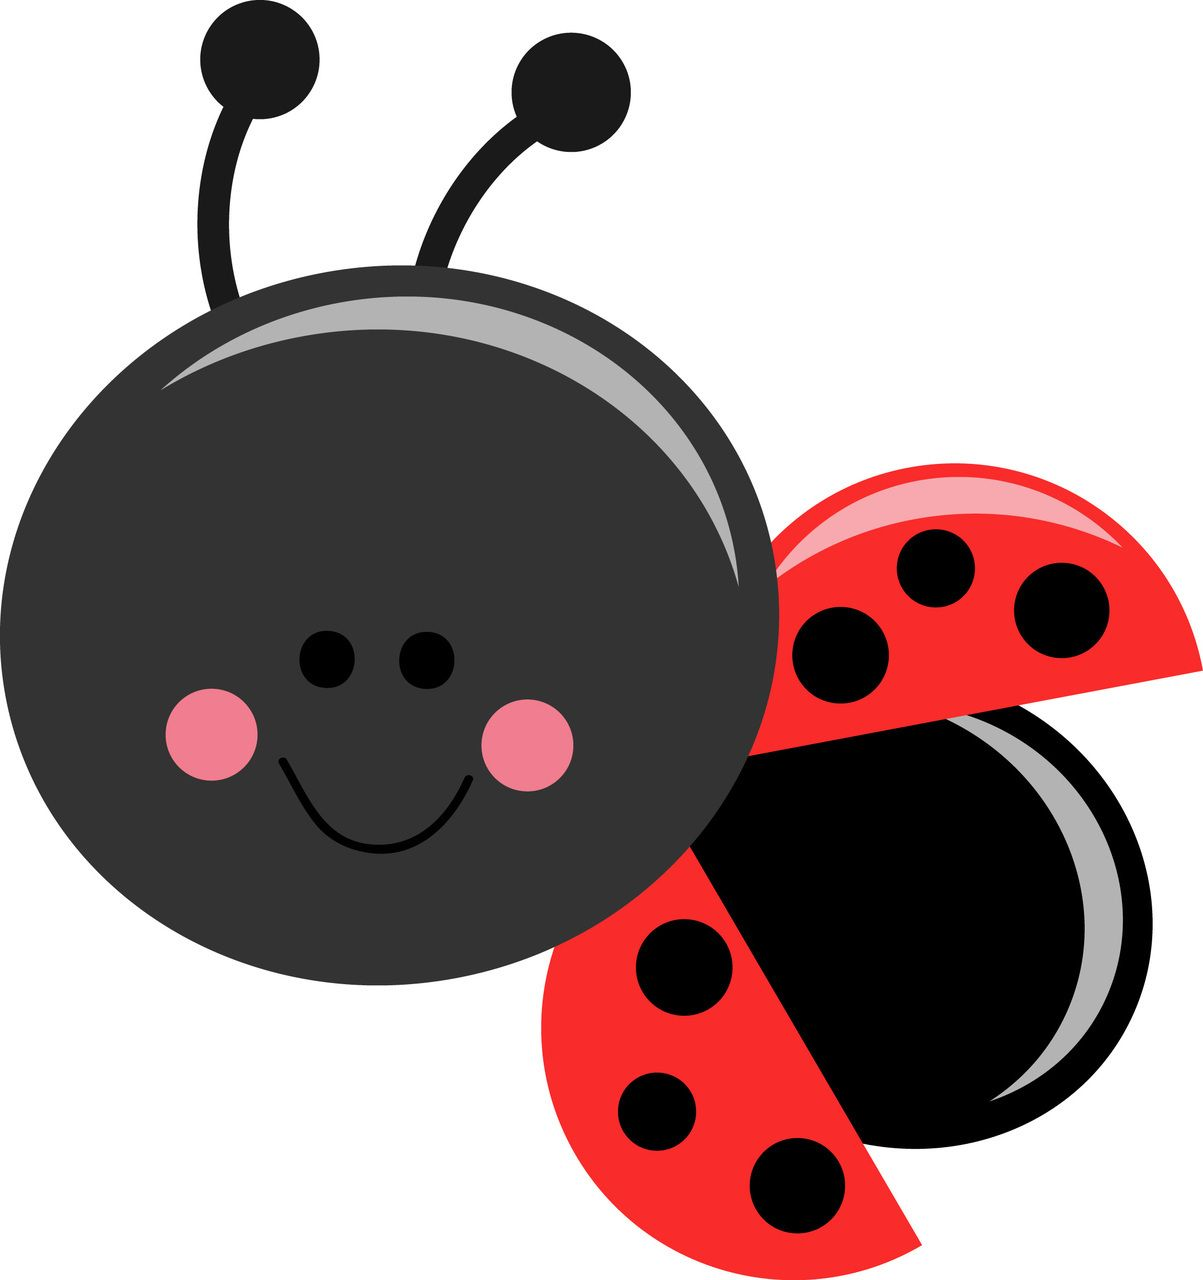 ladybug graphics cute ladybug images free cliparts that you can rh pinterest co uk free printable ladybug clipart free cute ladybug clipart